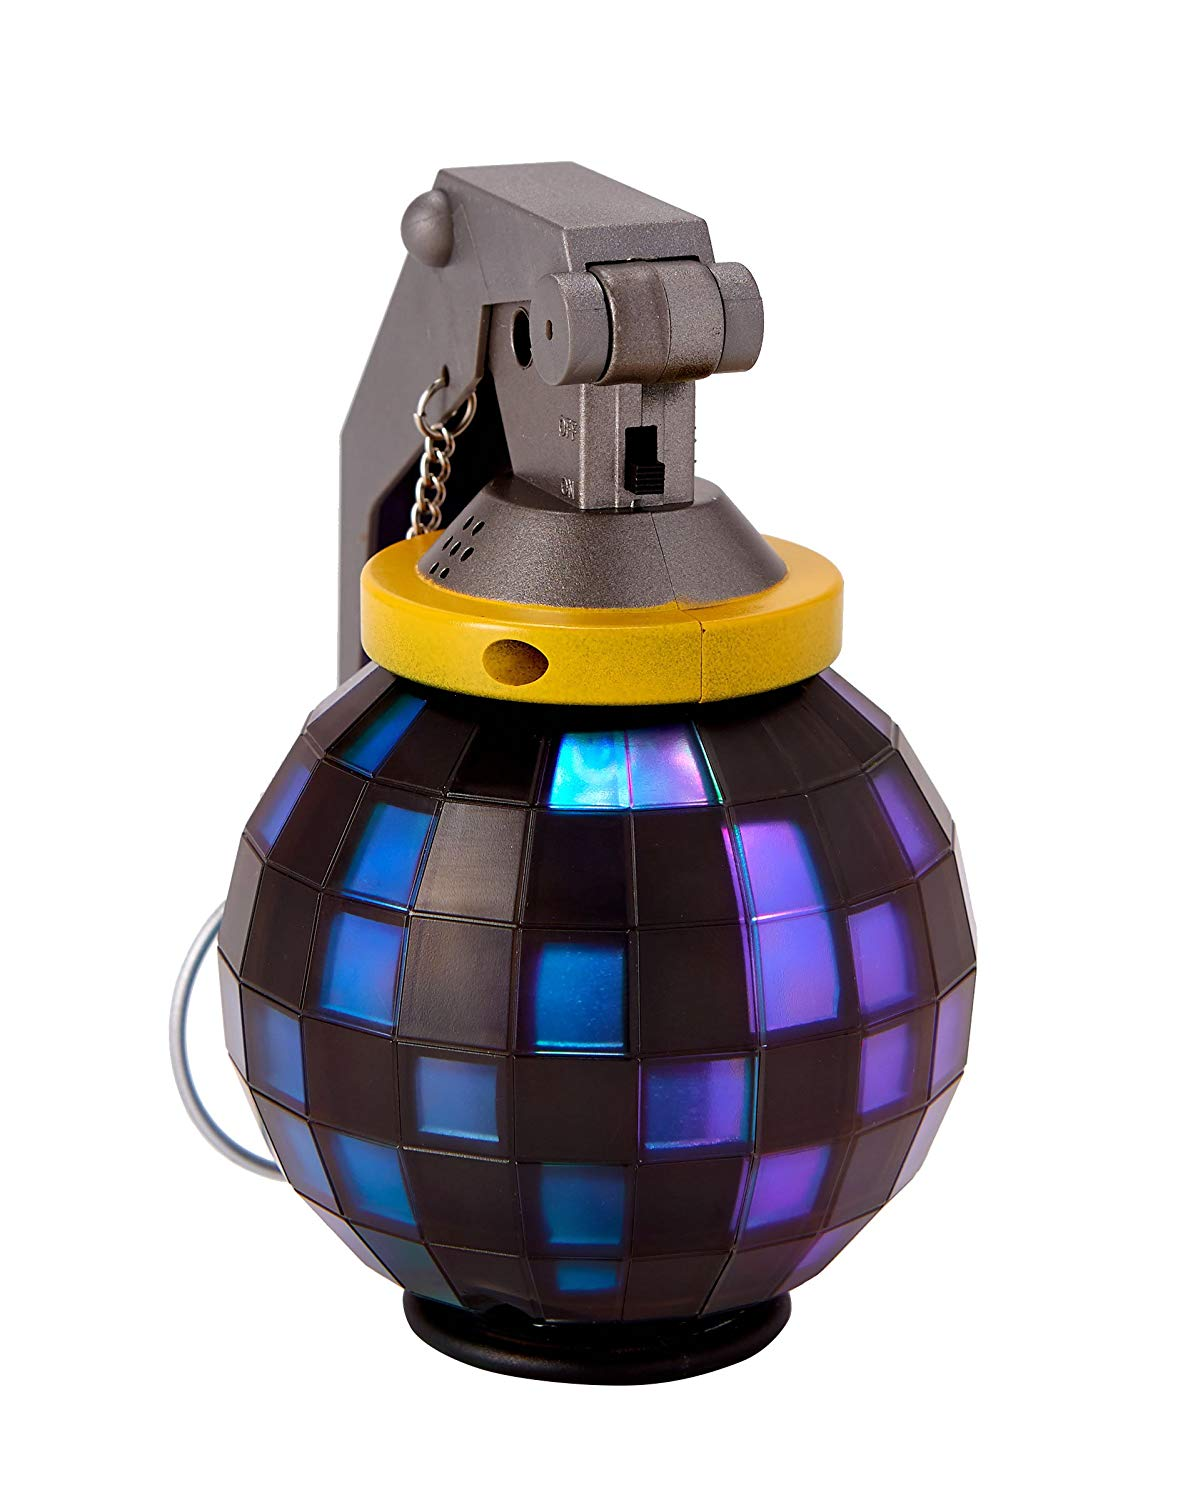 Clipart boogie bomb fortnite jpg free Spirit Halloween Fortnite Boogie Bomb with Lights and Sounds | Officially  Licensed jpg free